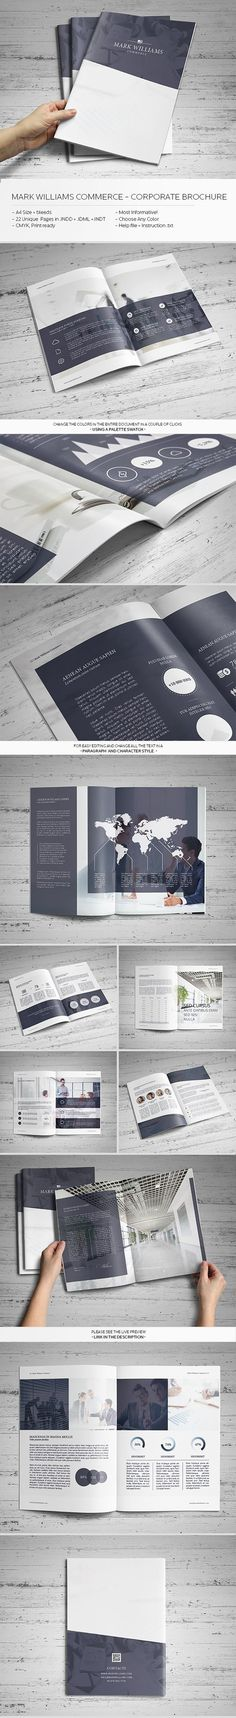 Party Picks Photo - Layout / Corporate Brochure by Realstar 767074519946012 #layout #editorial #brochure